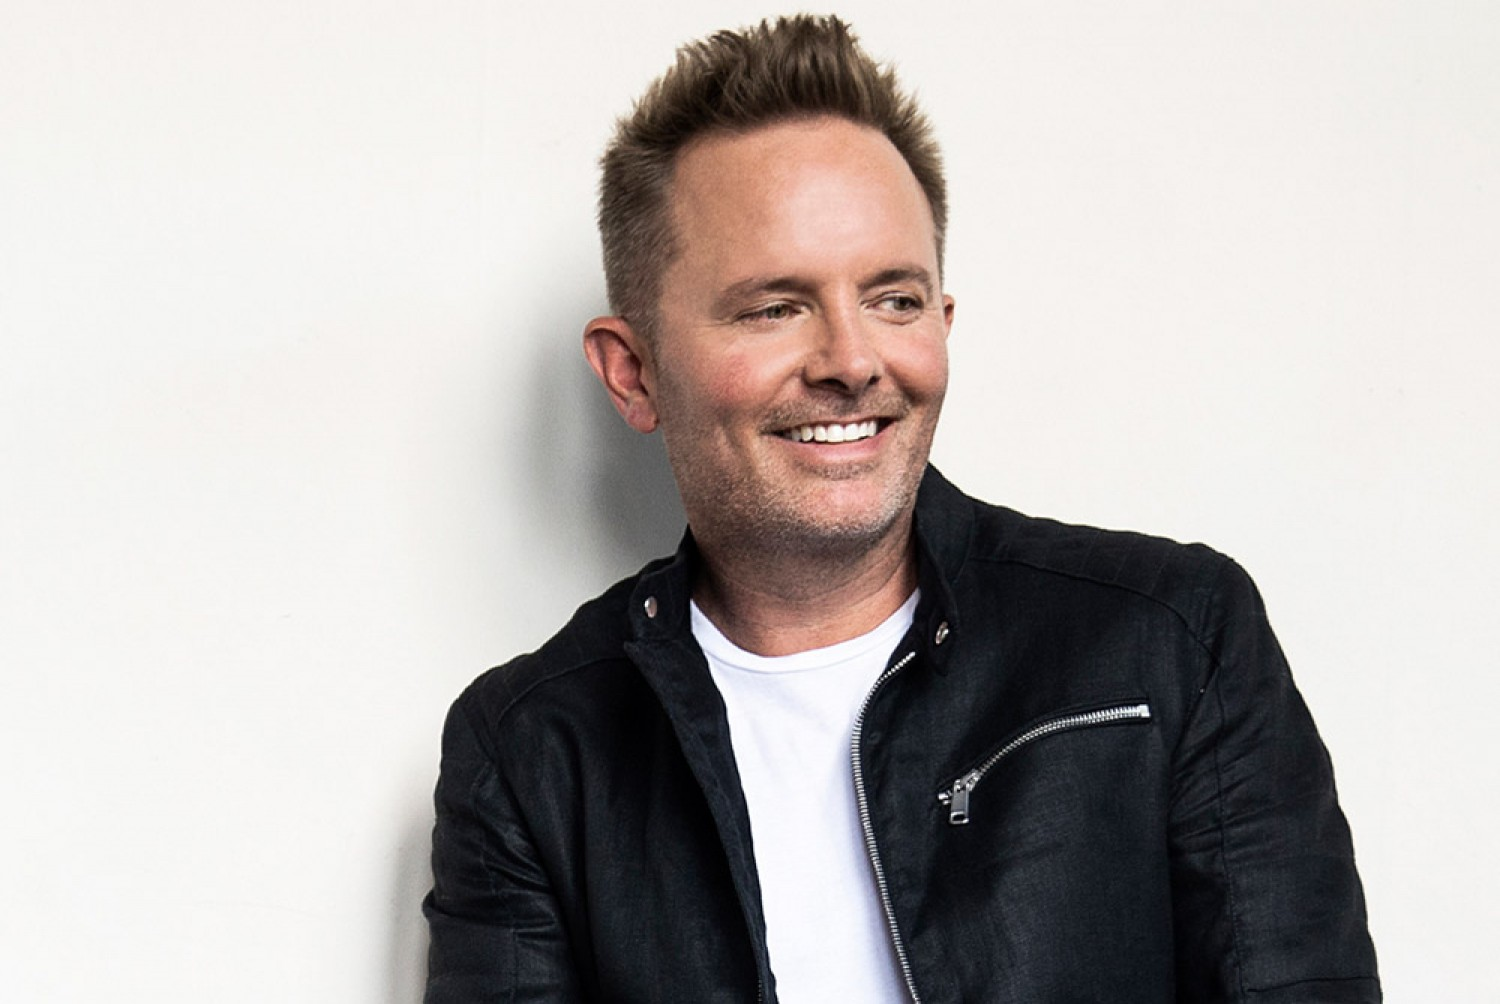 Chris Tomlin Concert Tour 2020 An Evening of Worship with Chris Tomlin | November 1 | EKUCenter.com